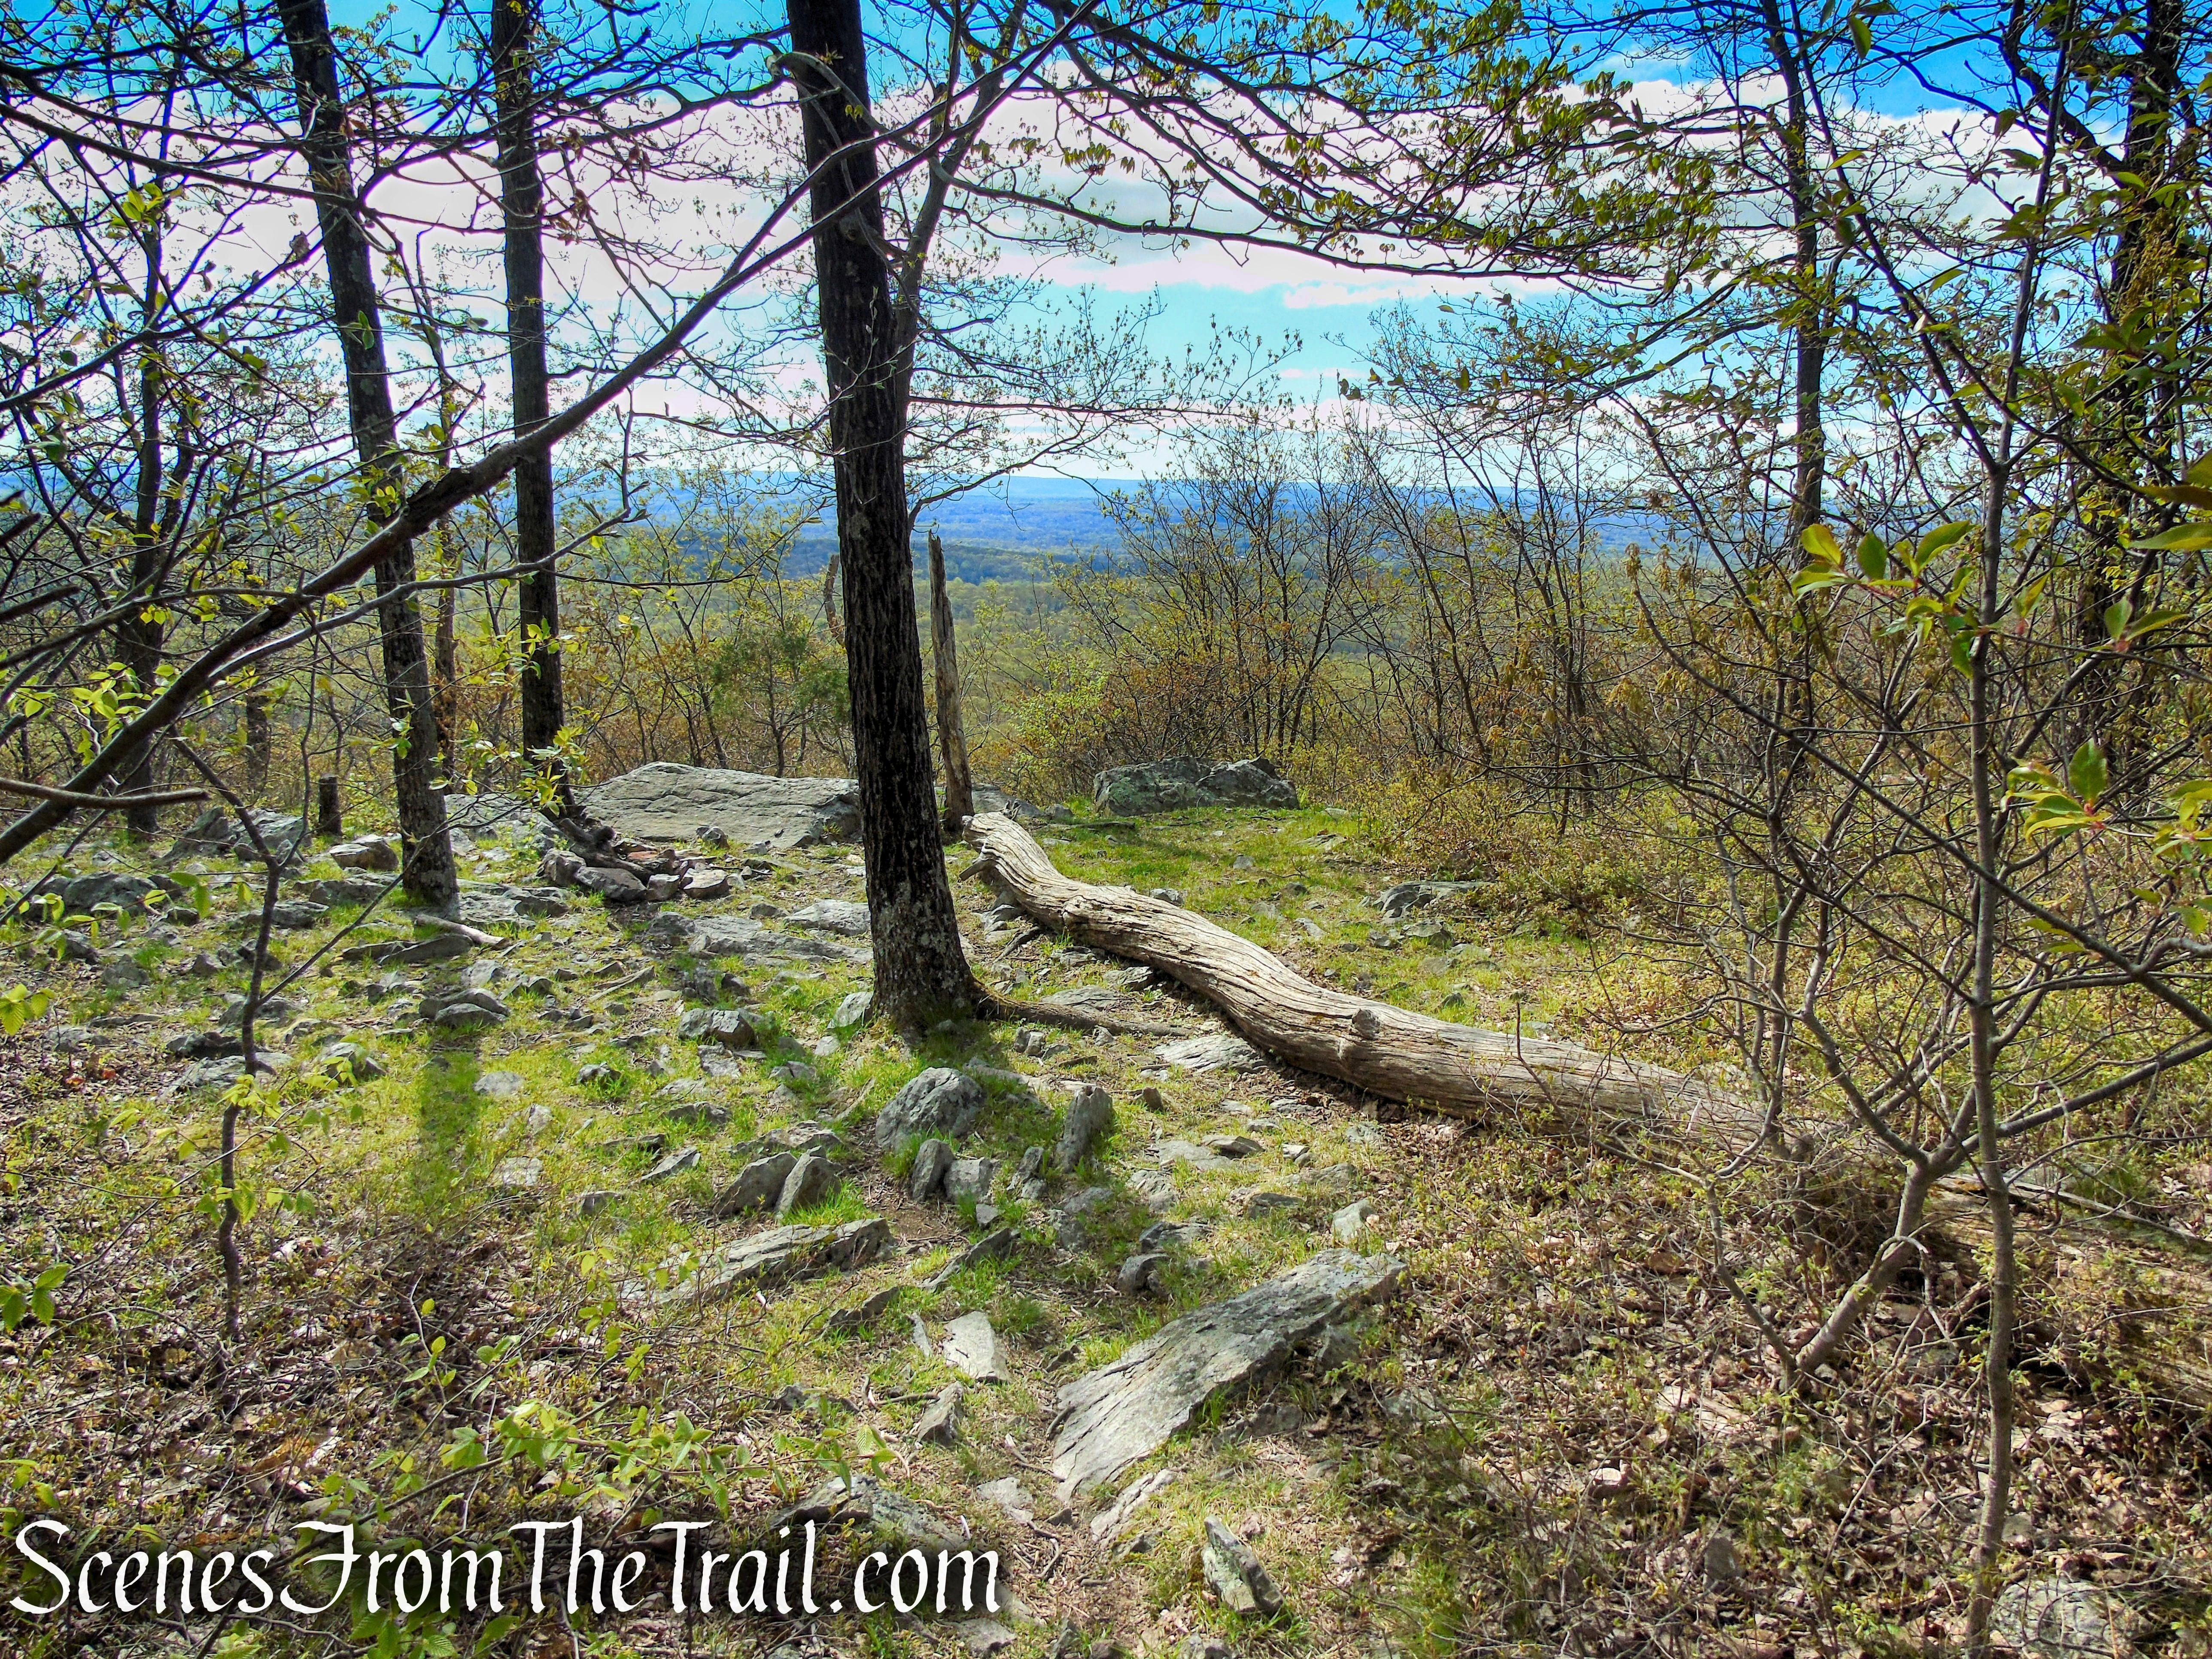 1st viewpoint - Mount Mohican